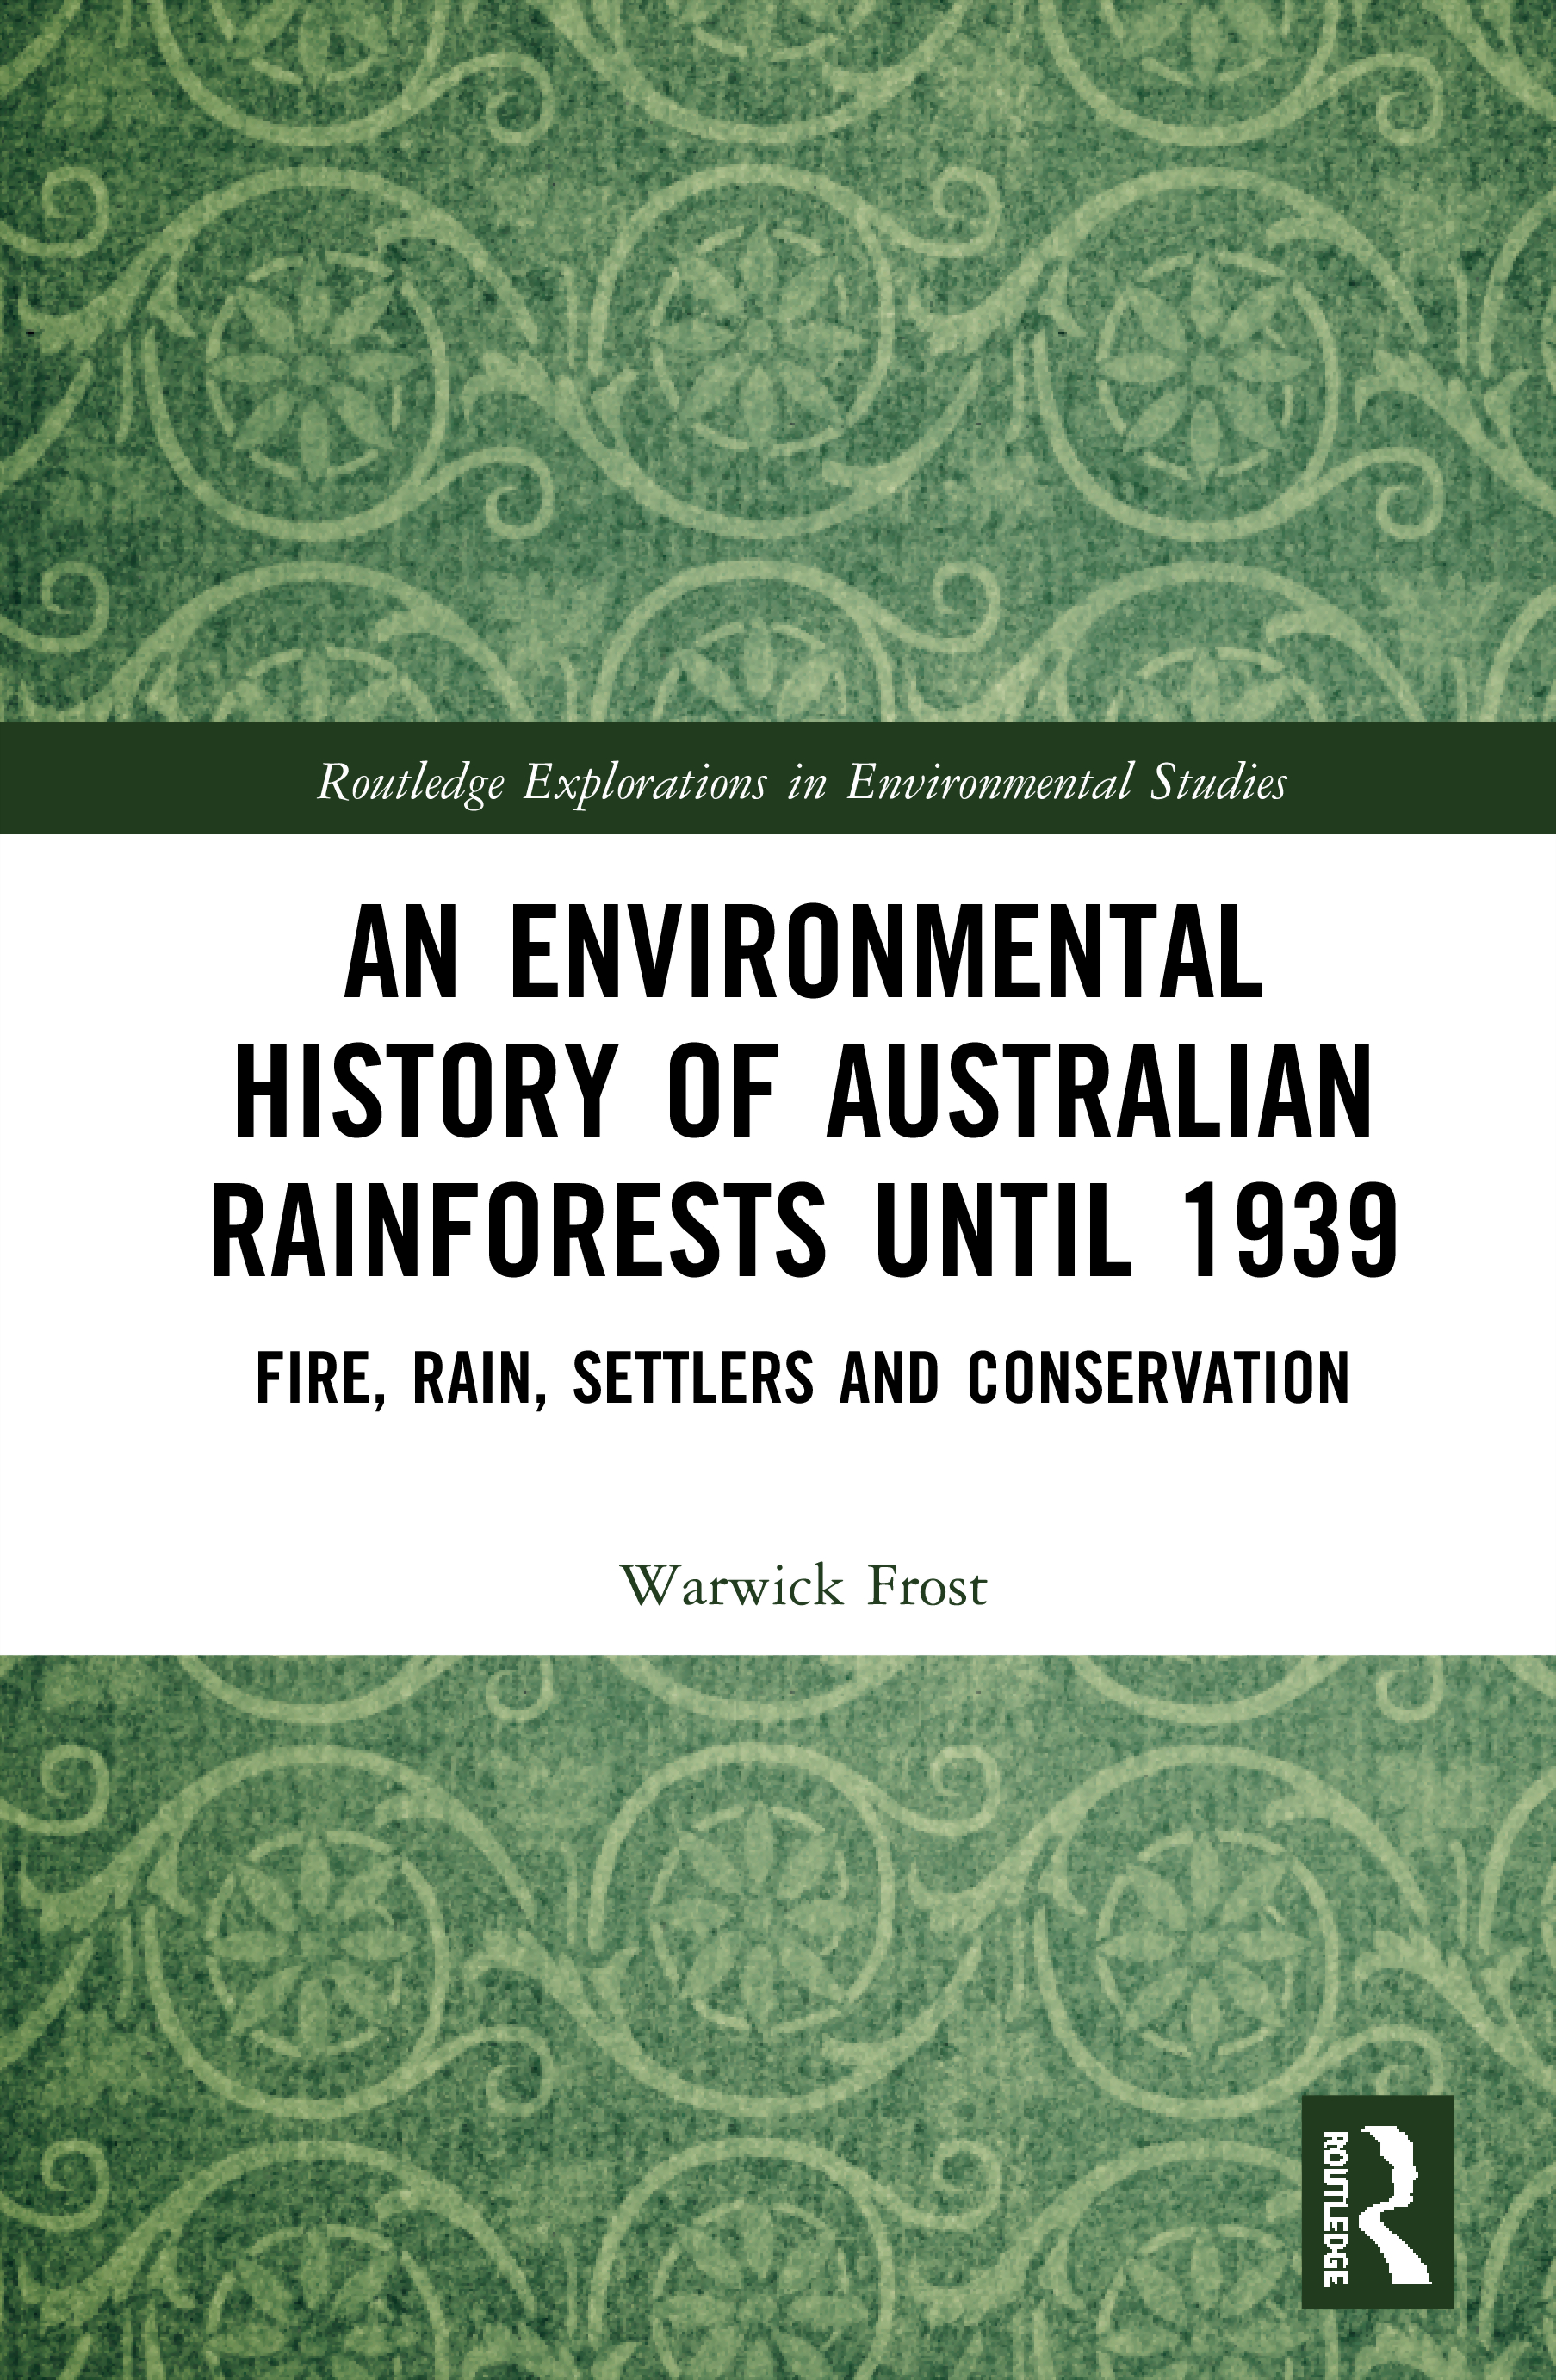 An Environmental History of Australian Rainforests until 1939: Fire, Rain, Settlers and Conservation book cover